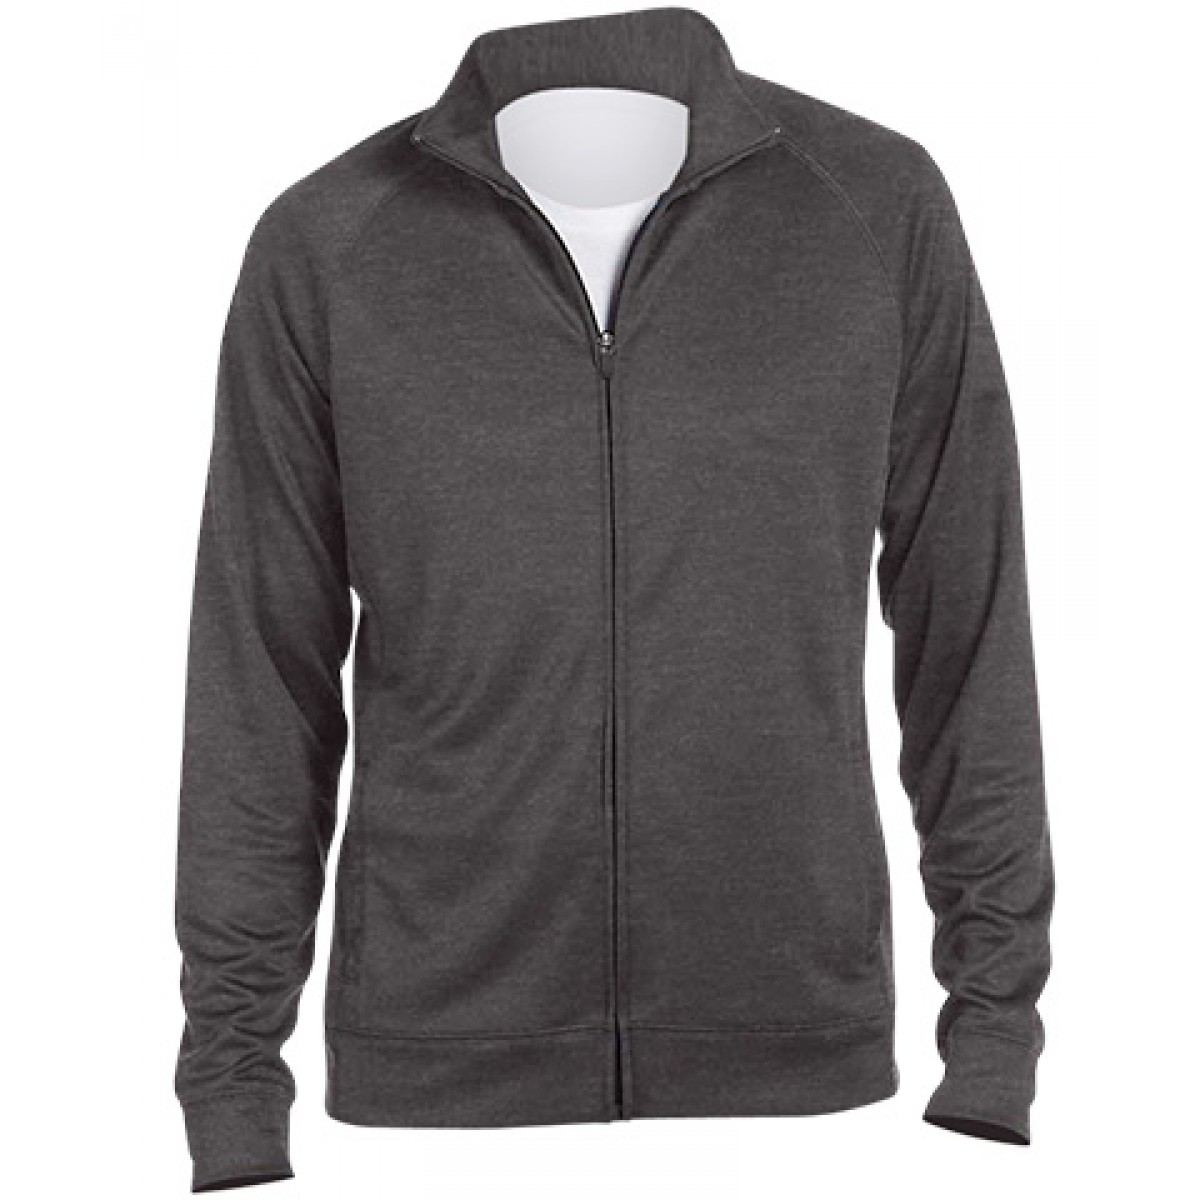 Men's Lightweight Sports Jacket-Sports Grey-2XL